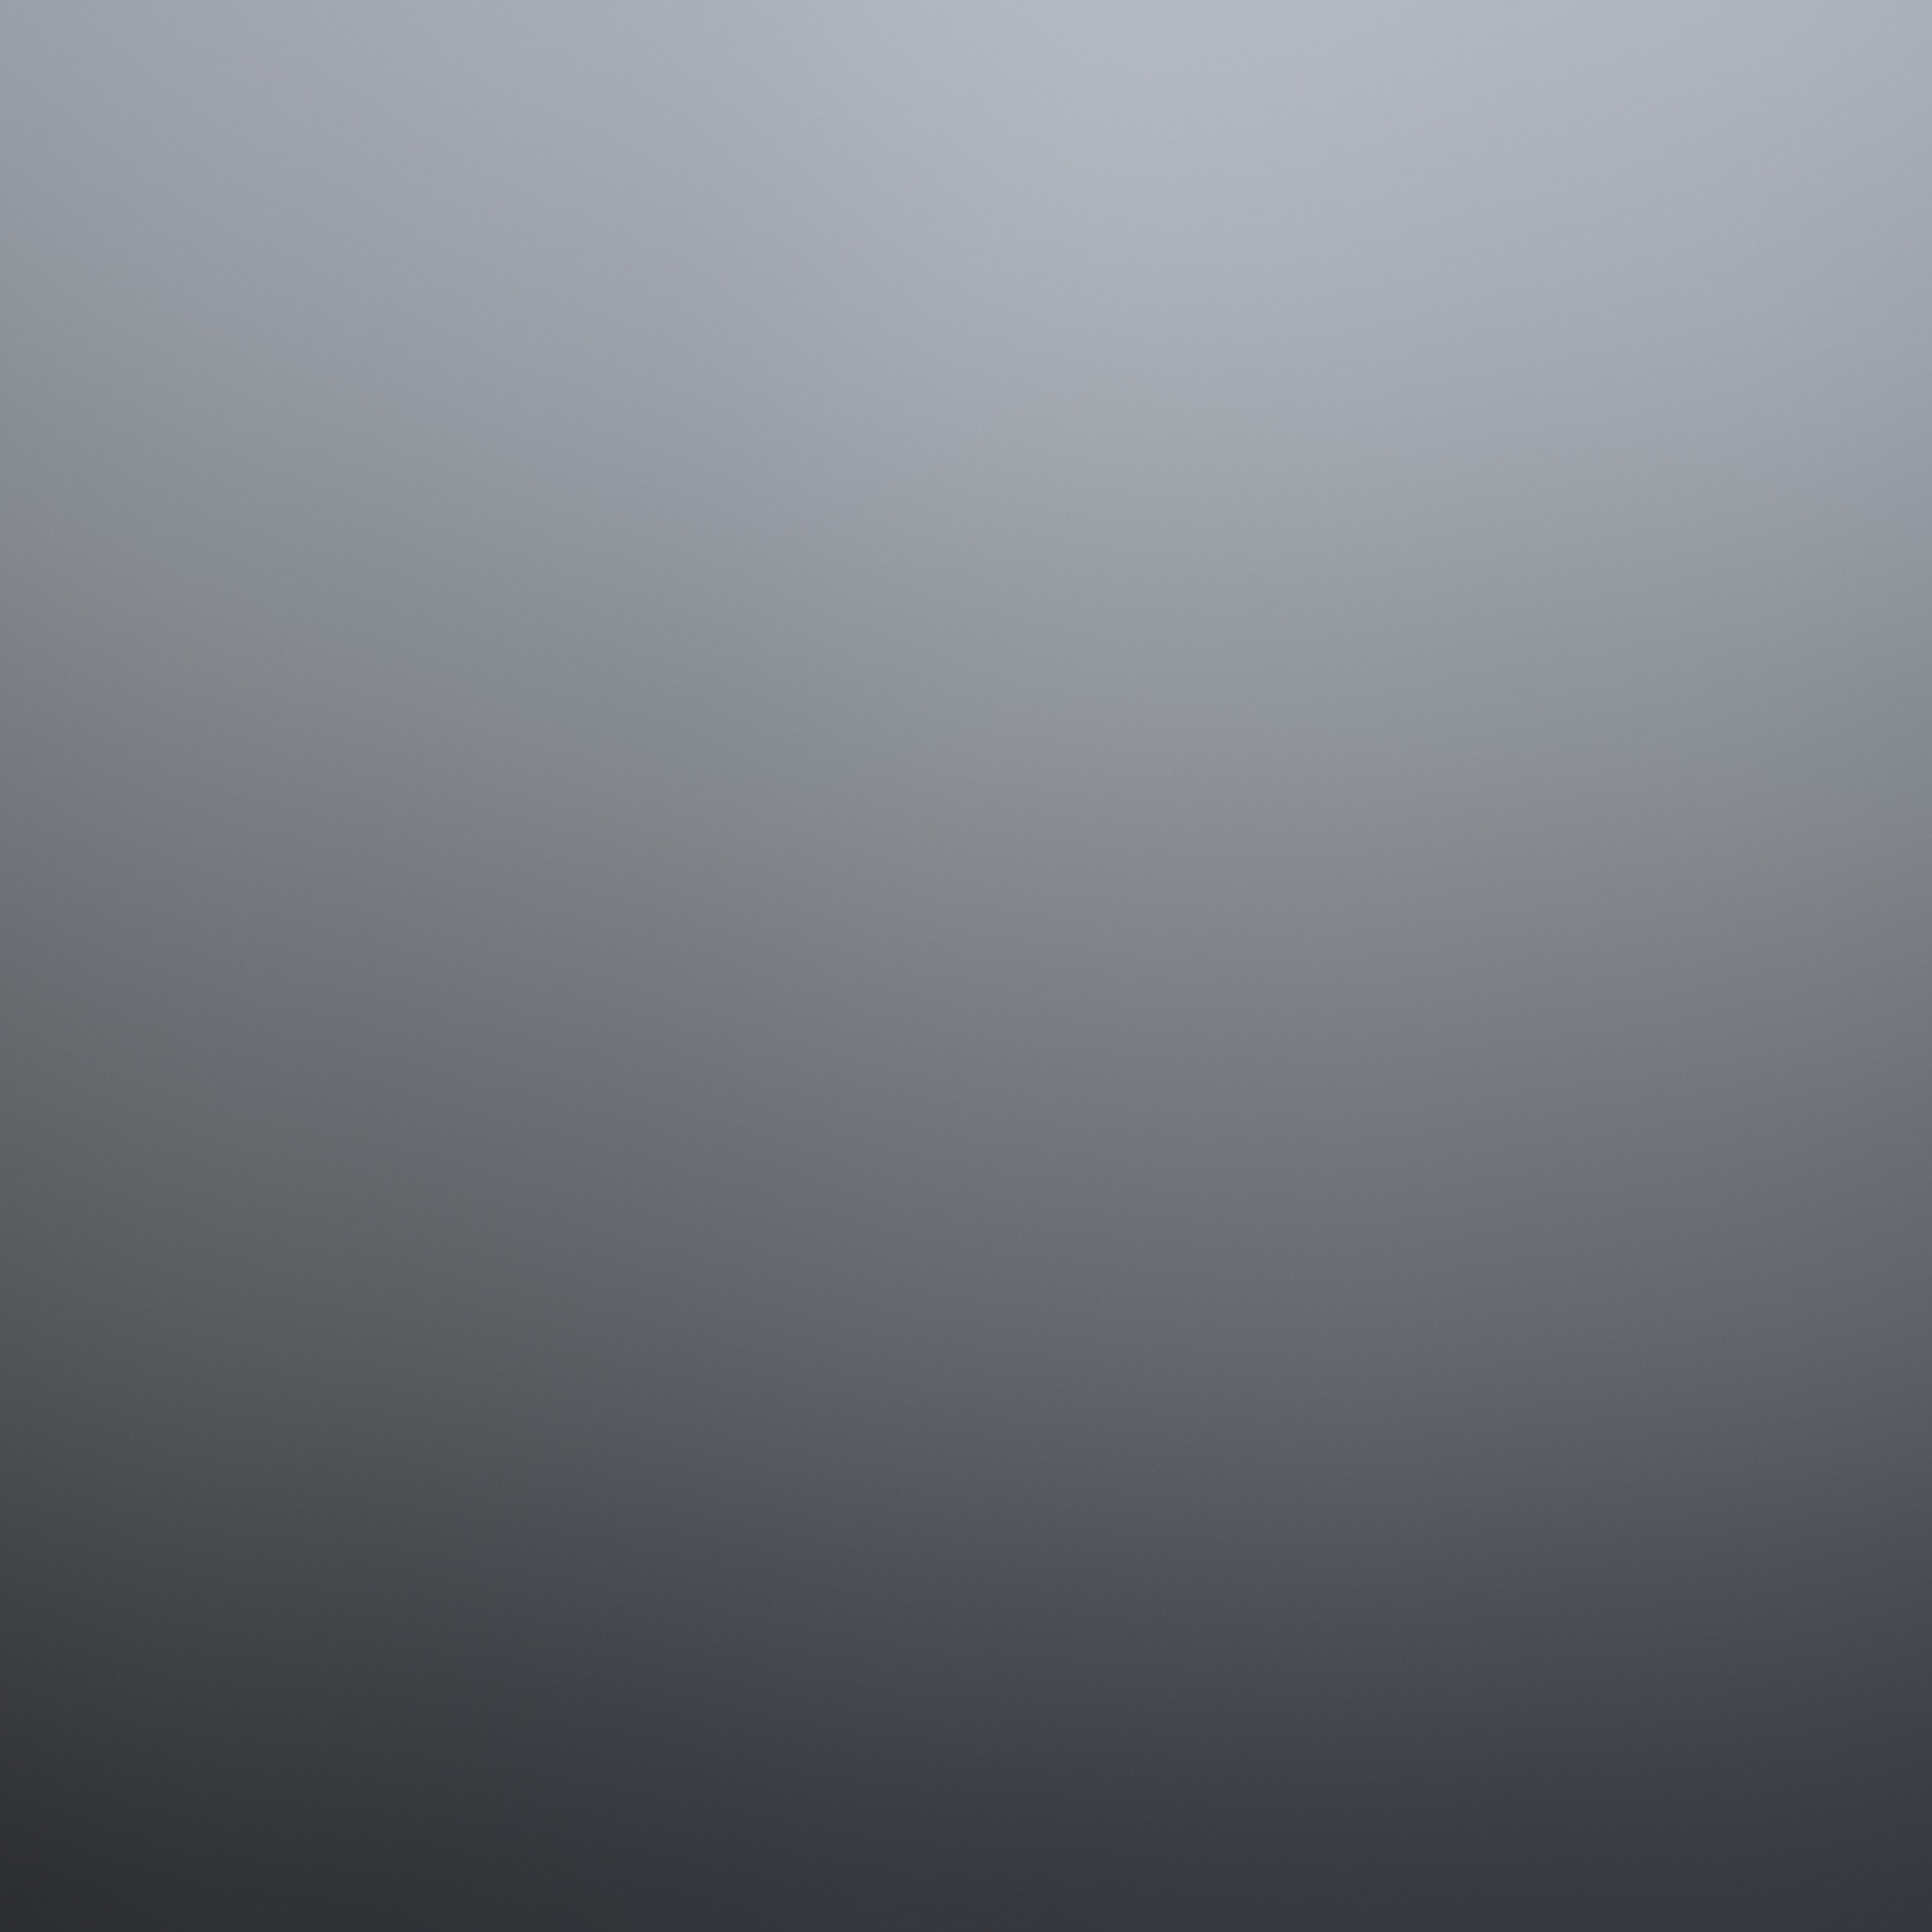 Gradient Grey Wallpaper for Apple iPad 4